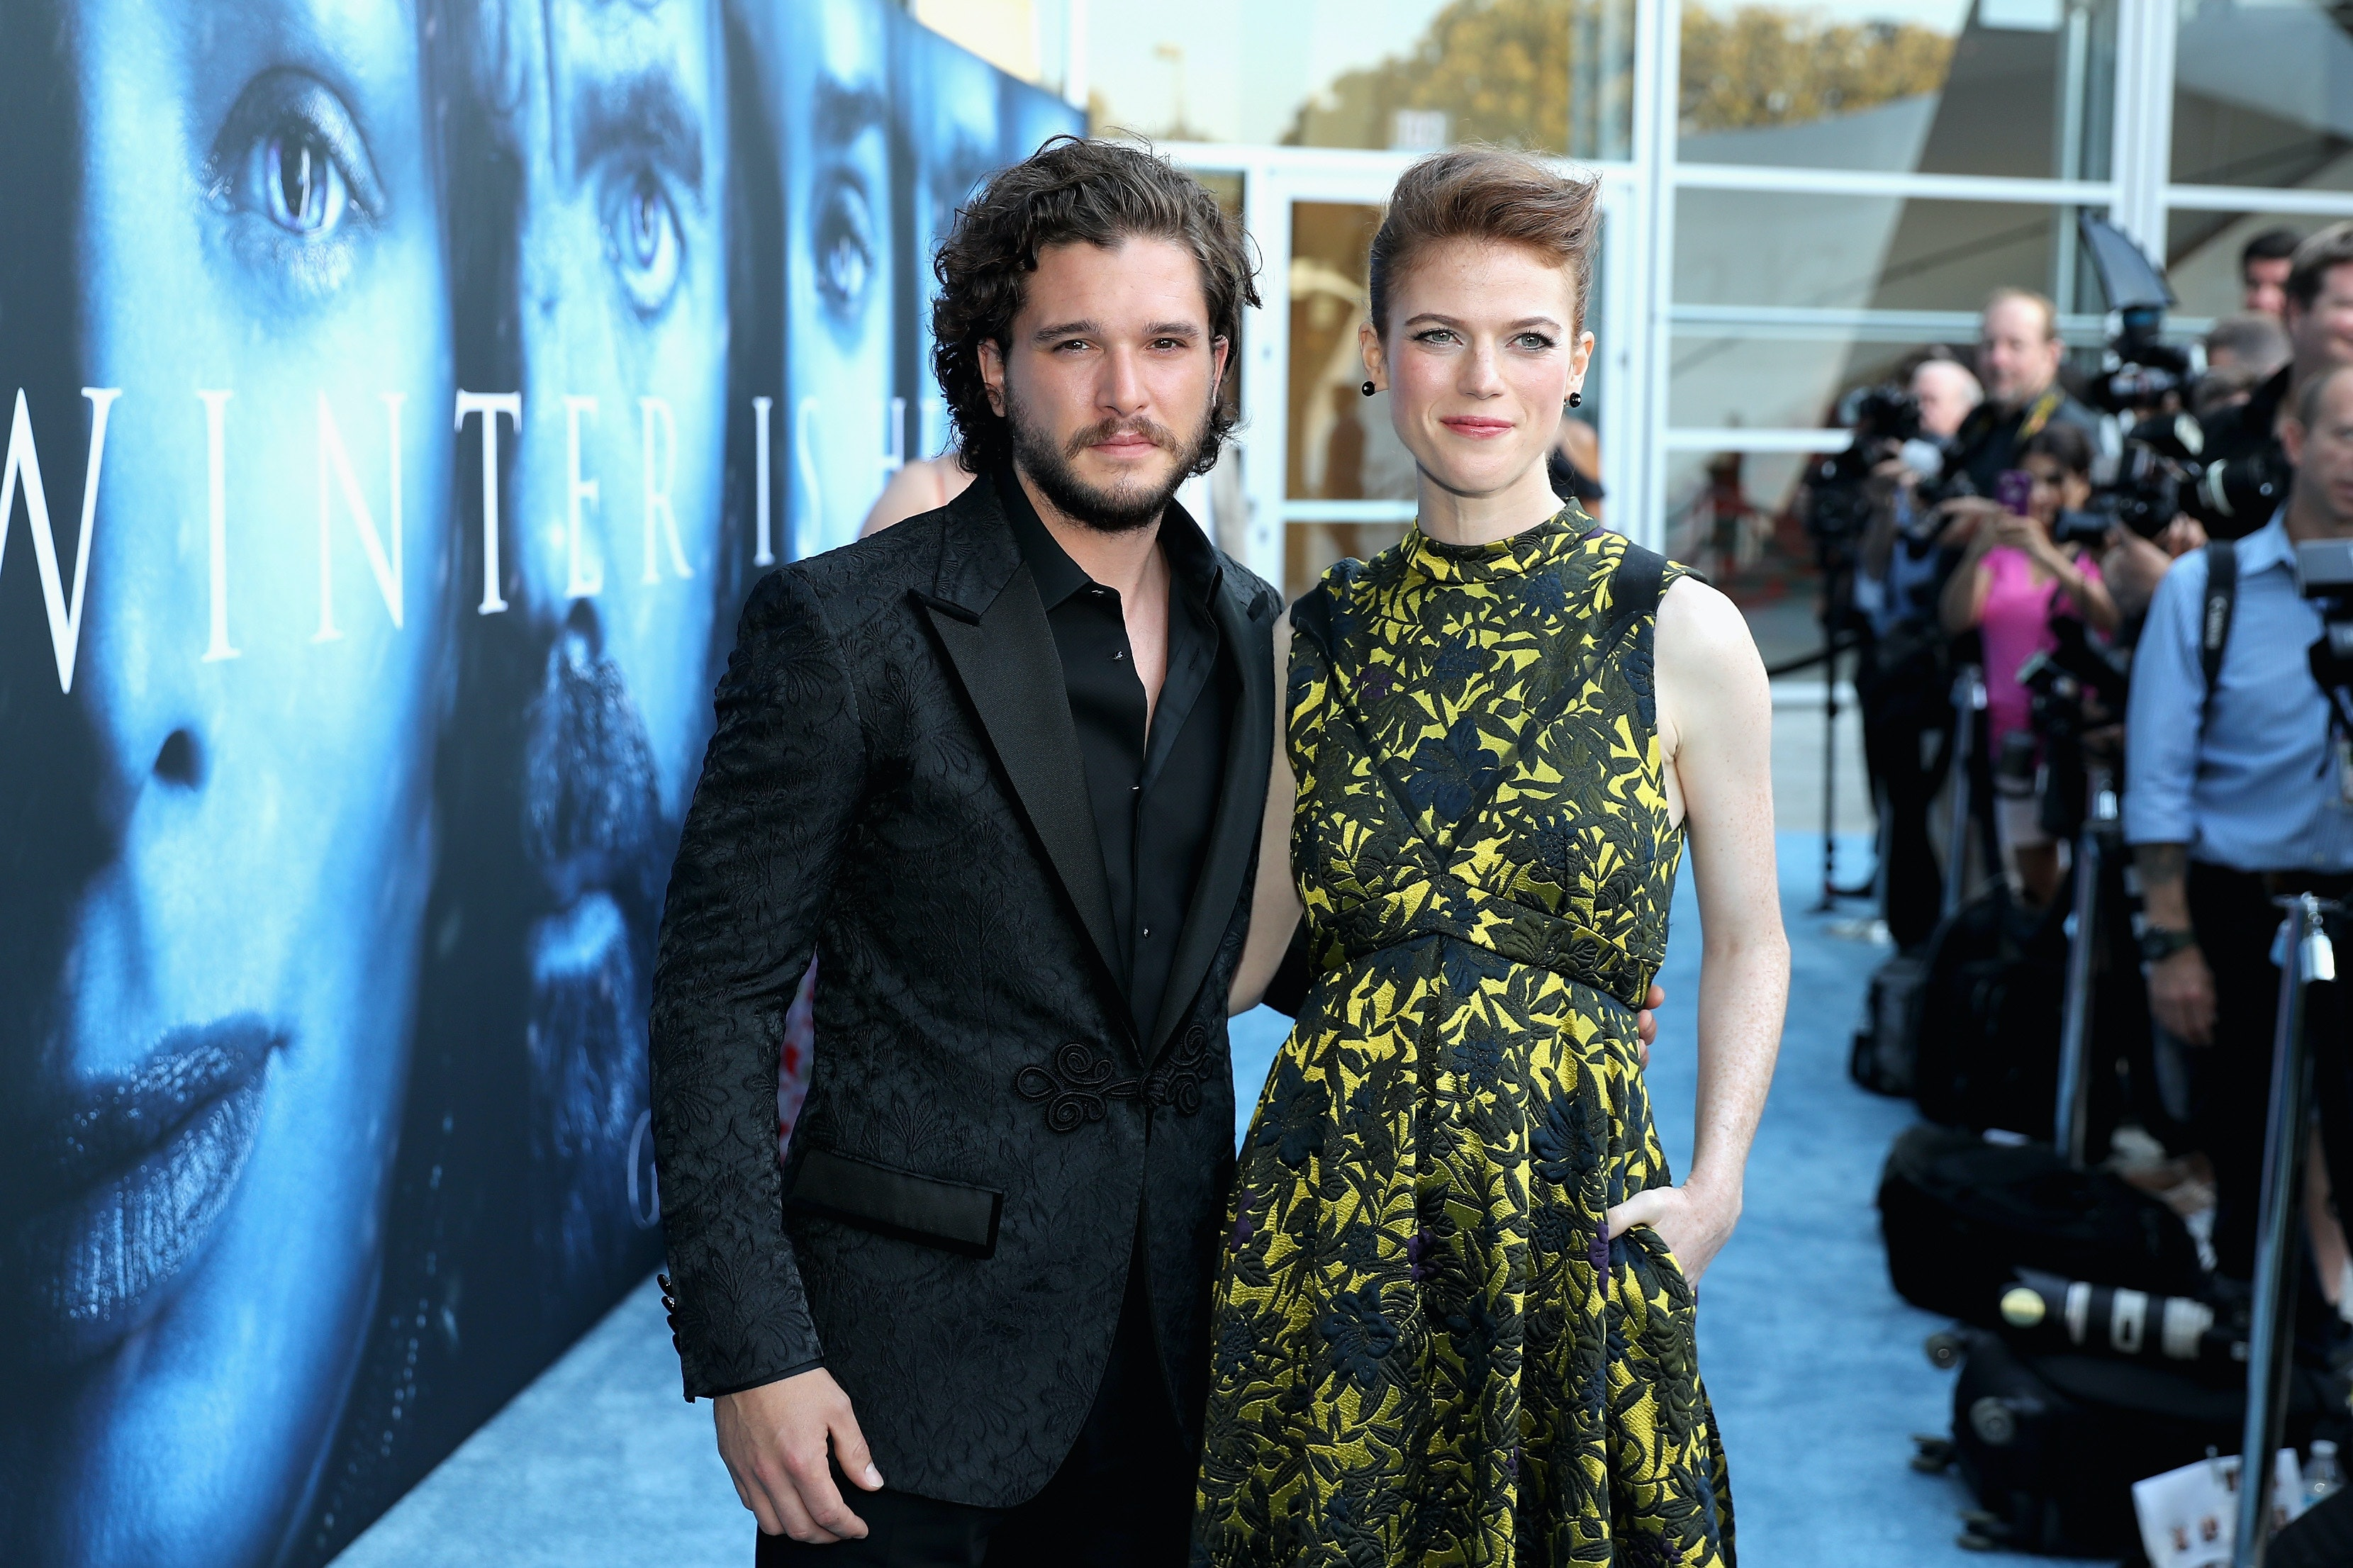 Jon snow and ygritte actors hookup